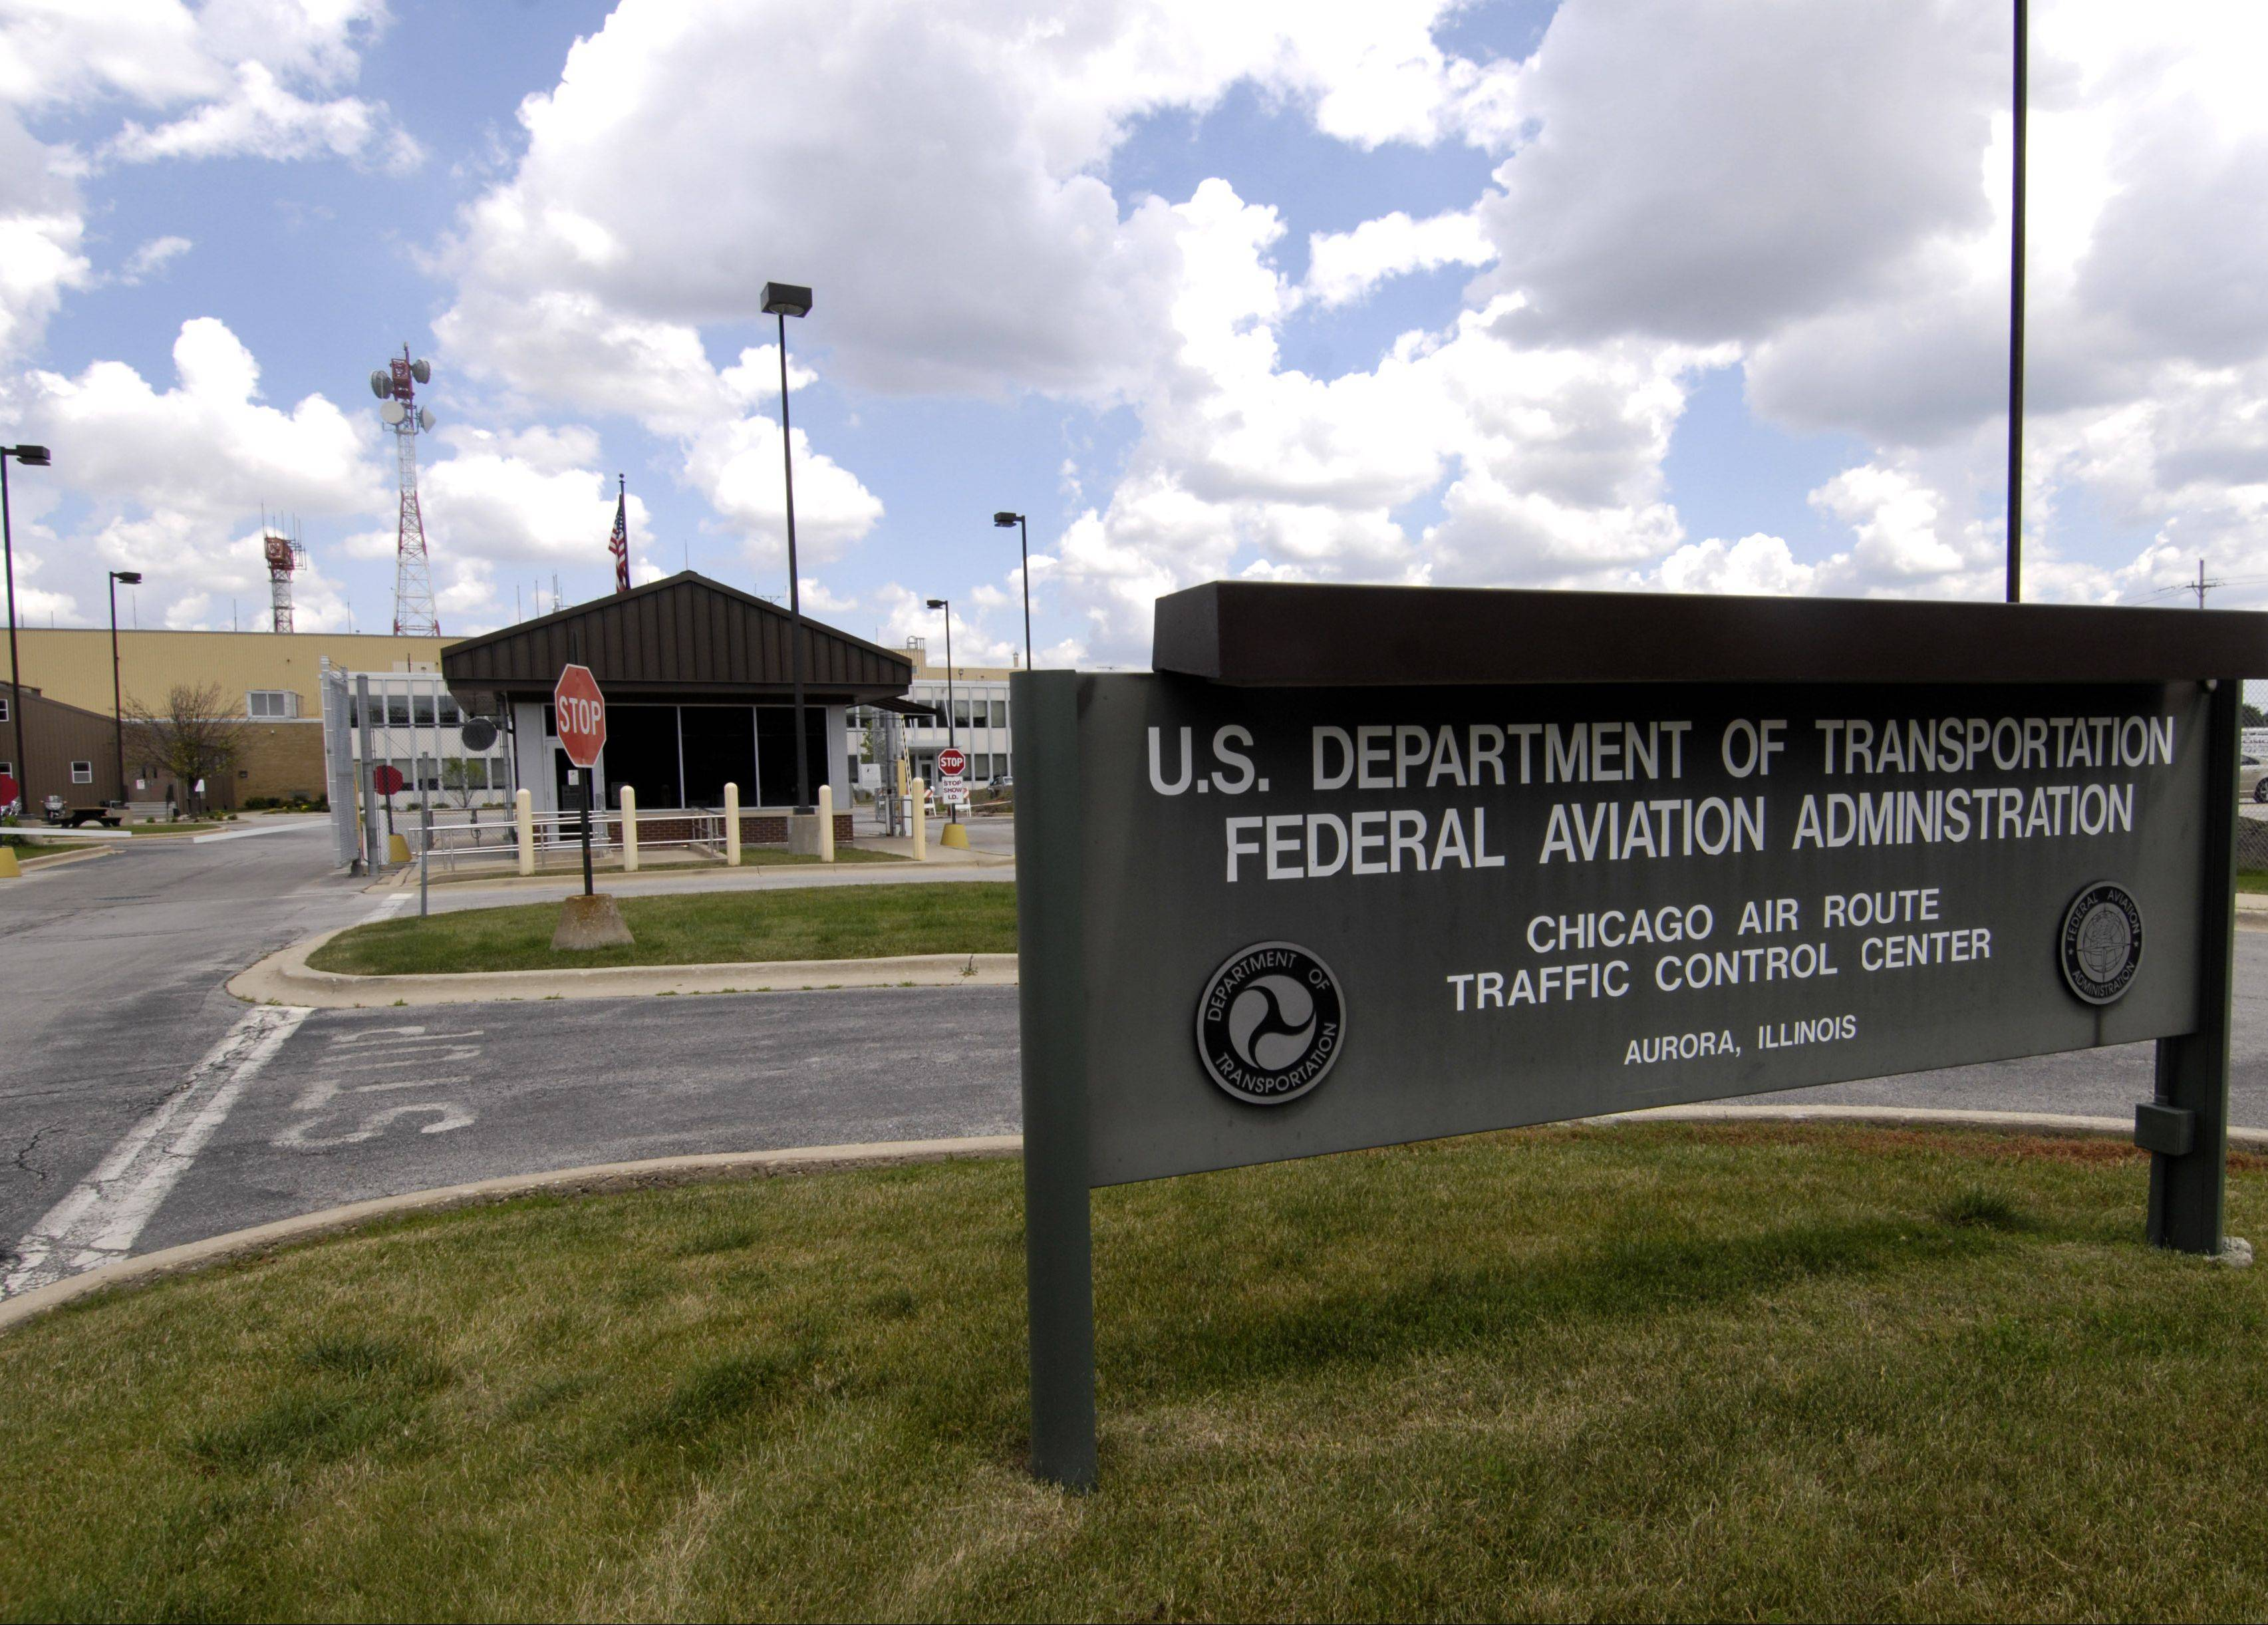 The unassuming, yet highly secure U.S. Department of Transportation's FAA Chicago Air Route Traffic Control Center in Aurora.